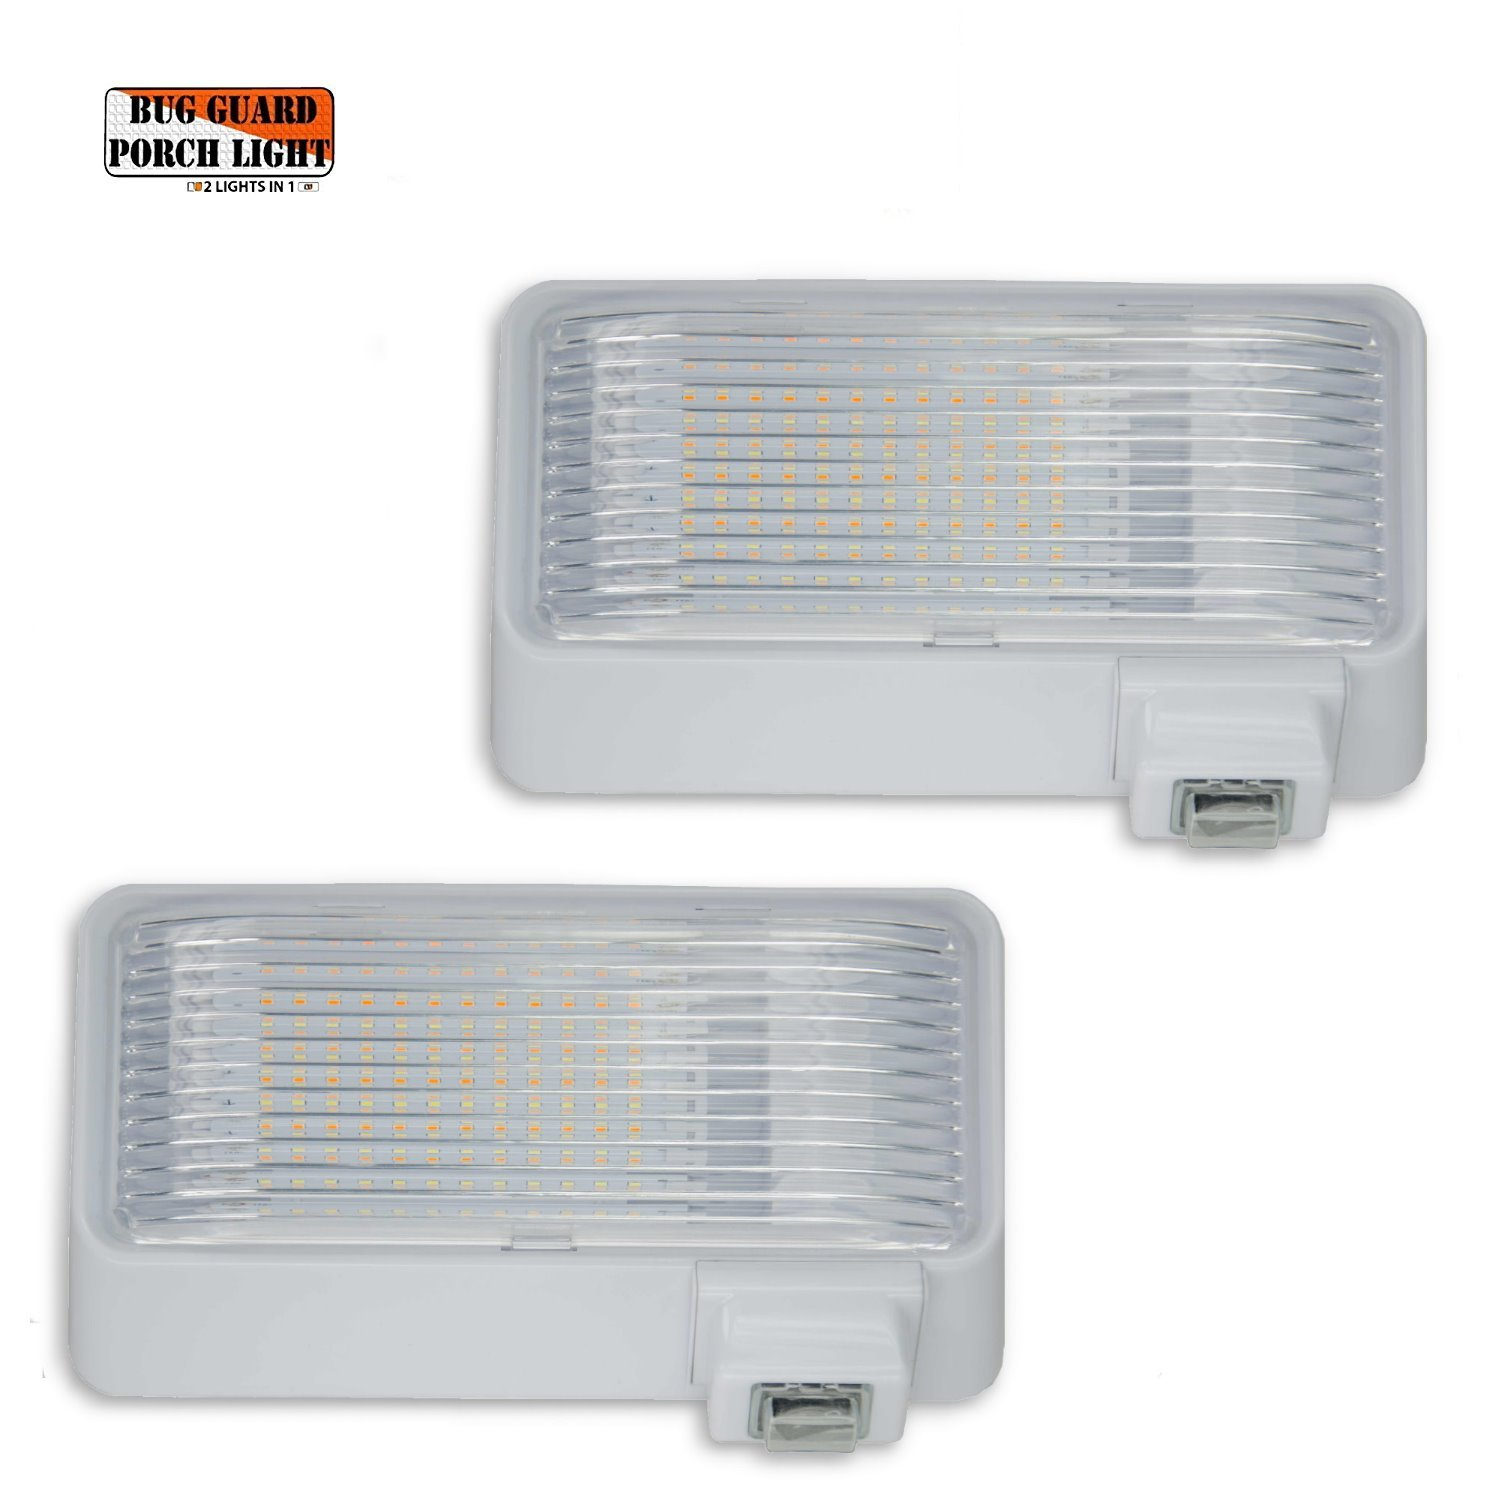 BUG-GUARD BG520W (2 PAC) 12 Volt Functional Exterior RV Long-Life LED Flood Porch Light with Bright 220 Lumen (Amber)/520 Lunen (White), 2 Lights in one.